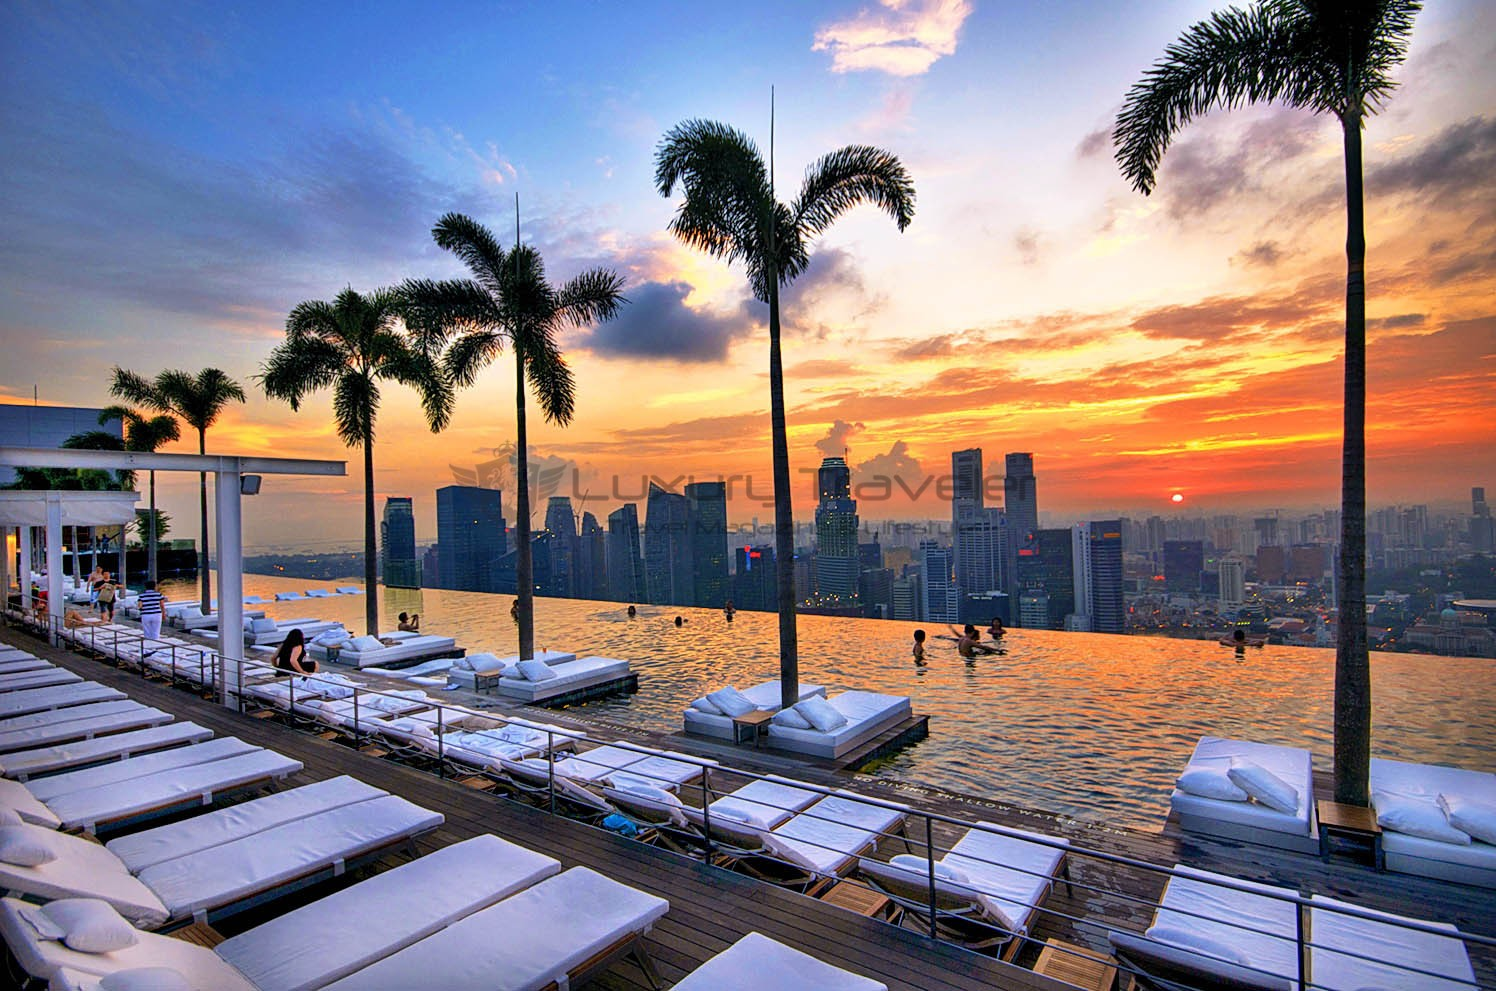 Marina bay sands singapore outstanding luxury hotel luxury traveler - Marina bay singapore pool ...